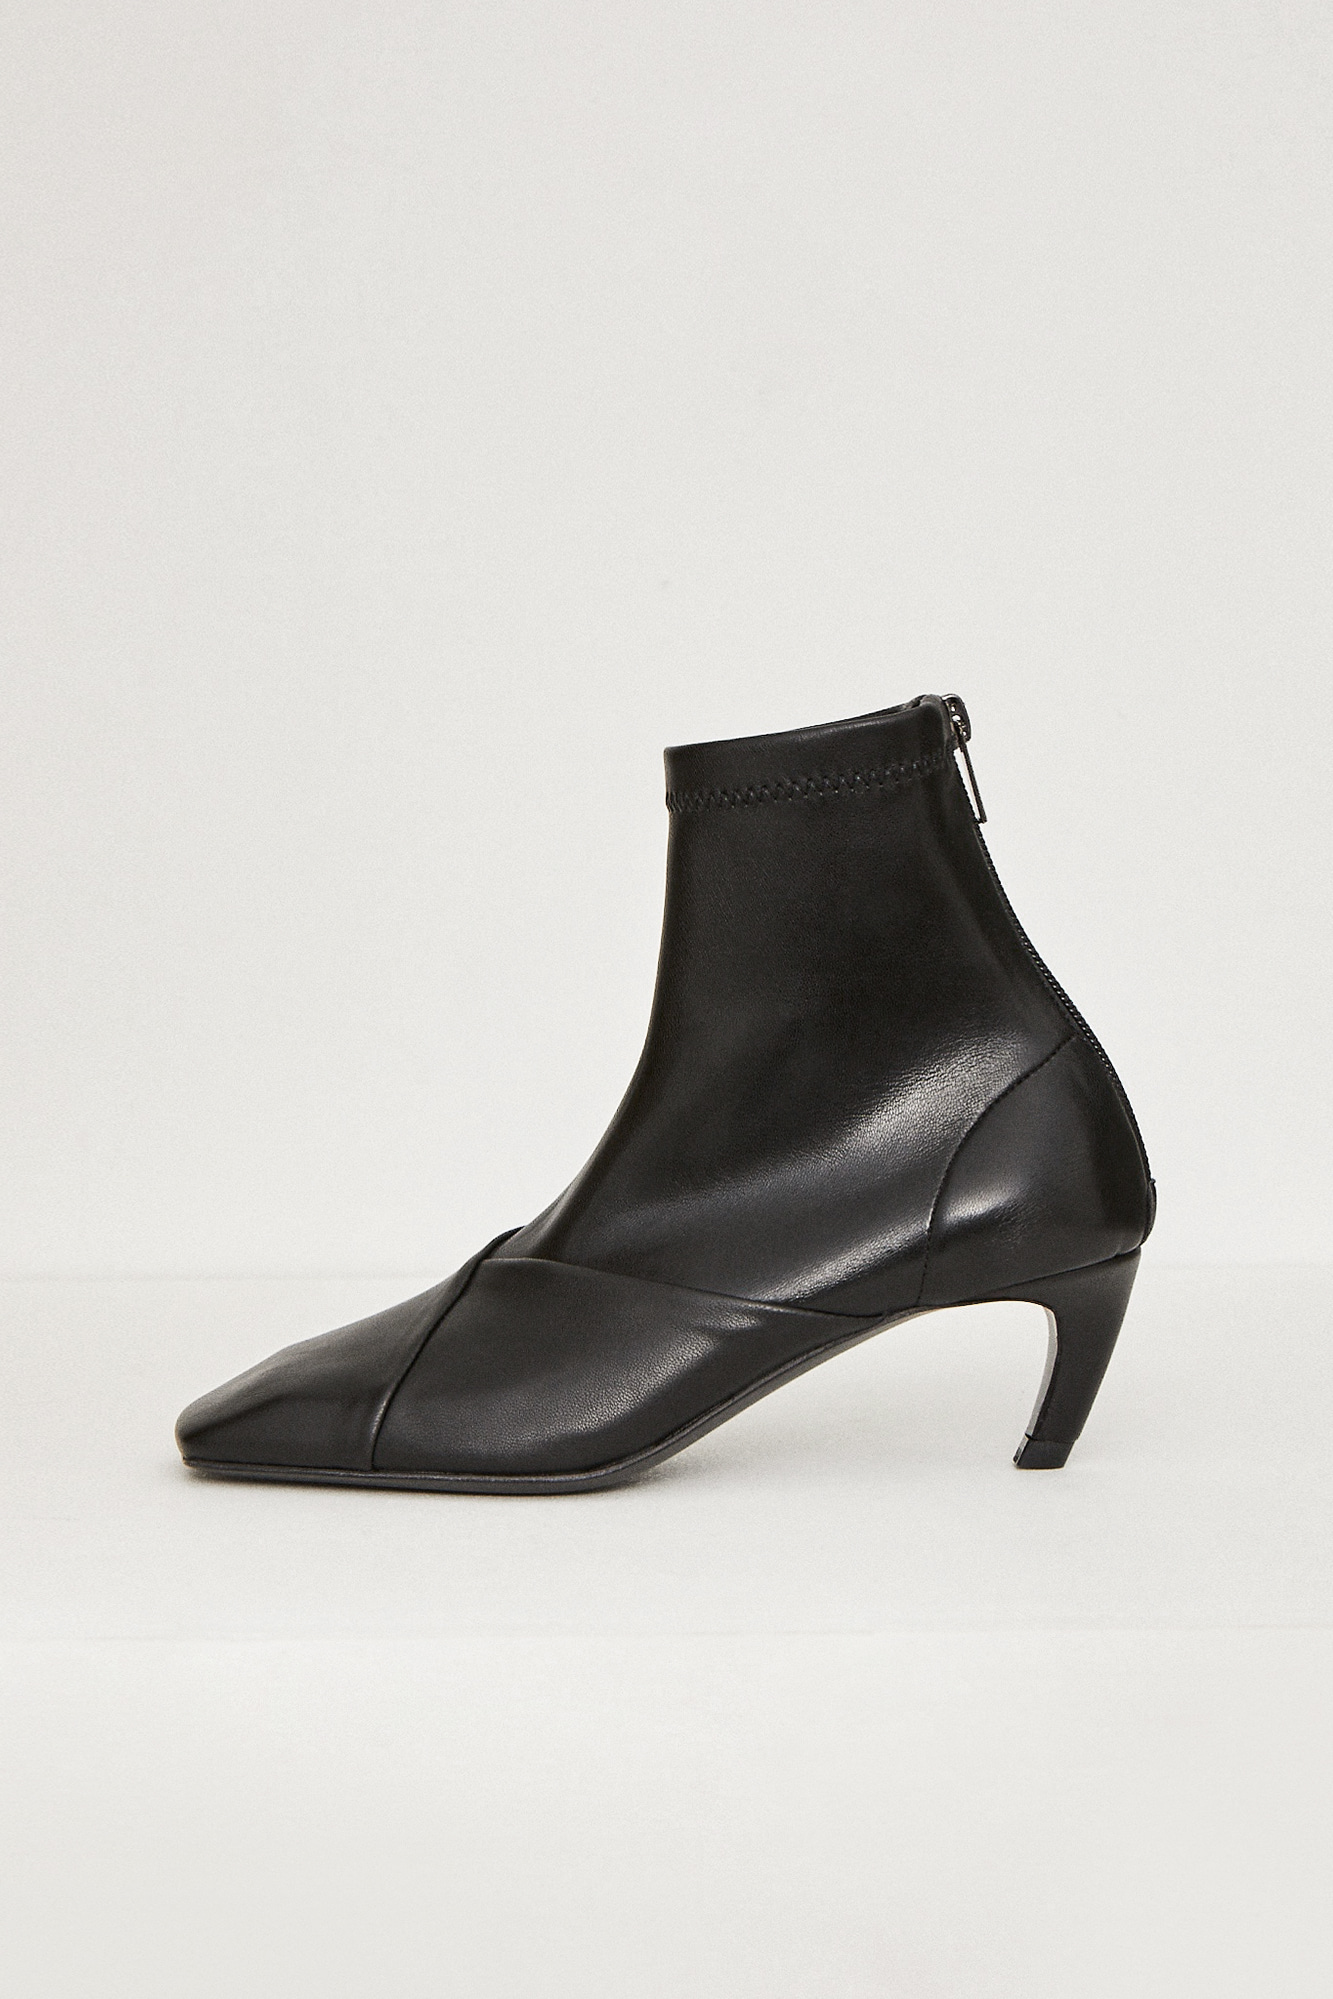 19FW SQUARE BOOTS - BLACK